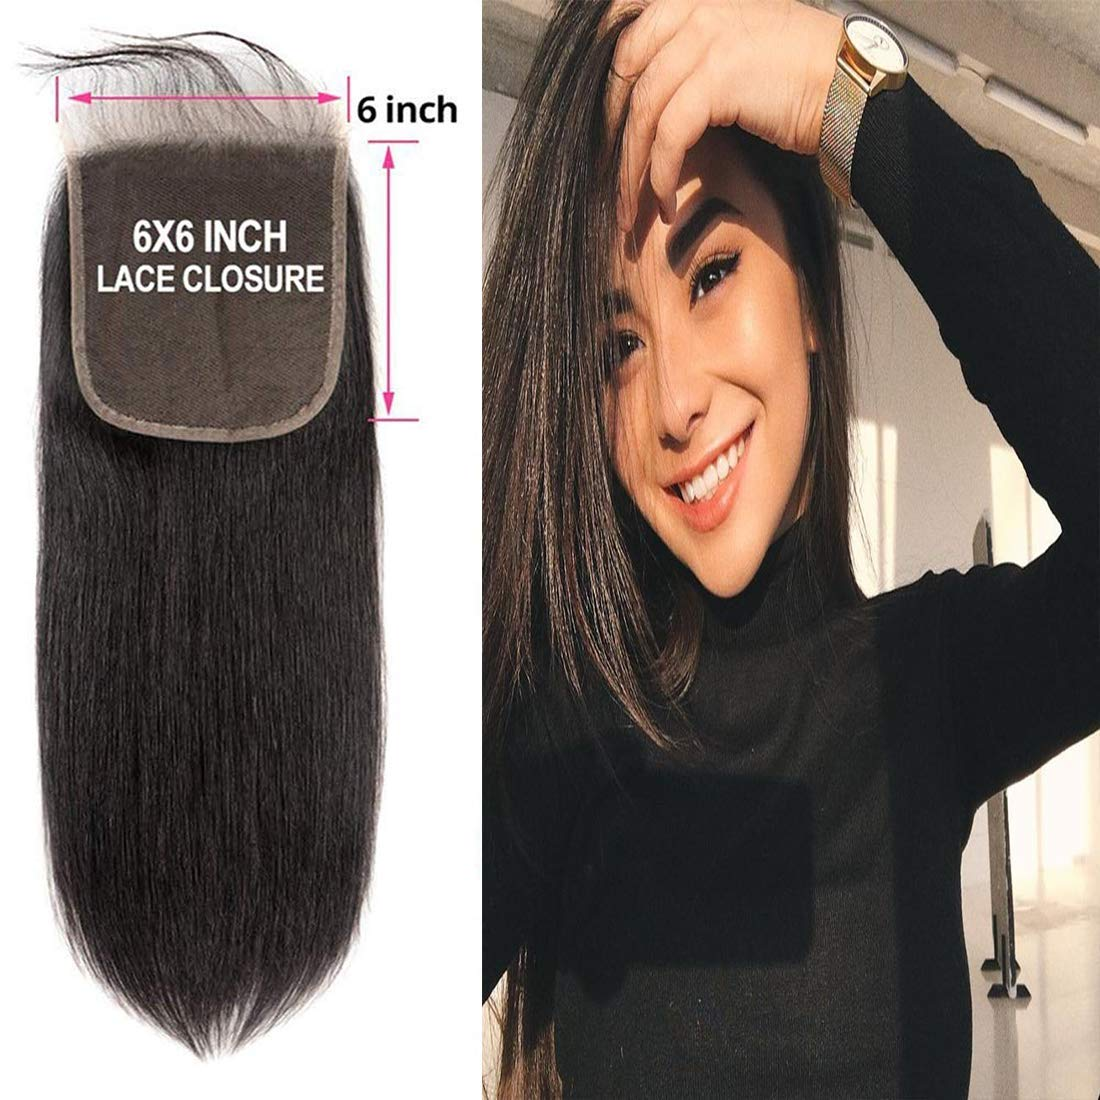 Straight 6x6 Closure Lace Front Free Part With Baby Hair Preplucked Bleached Knots 100% Brazilian Unprocessed Virgin Remy Human Hair Natural Hairline Sew In Hair Extensions Wet And Wavy 1b(22 inch)